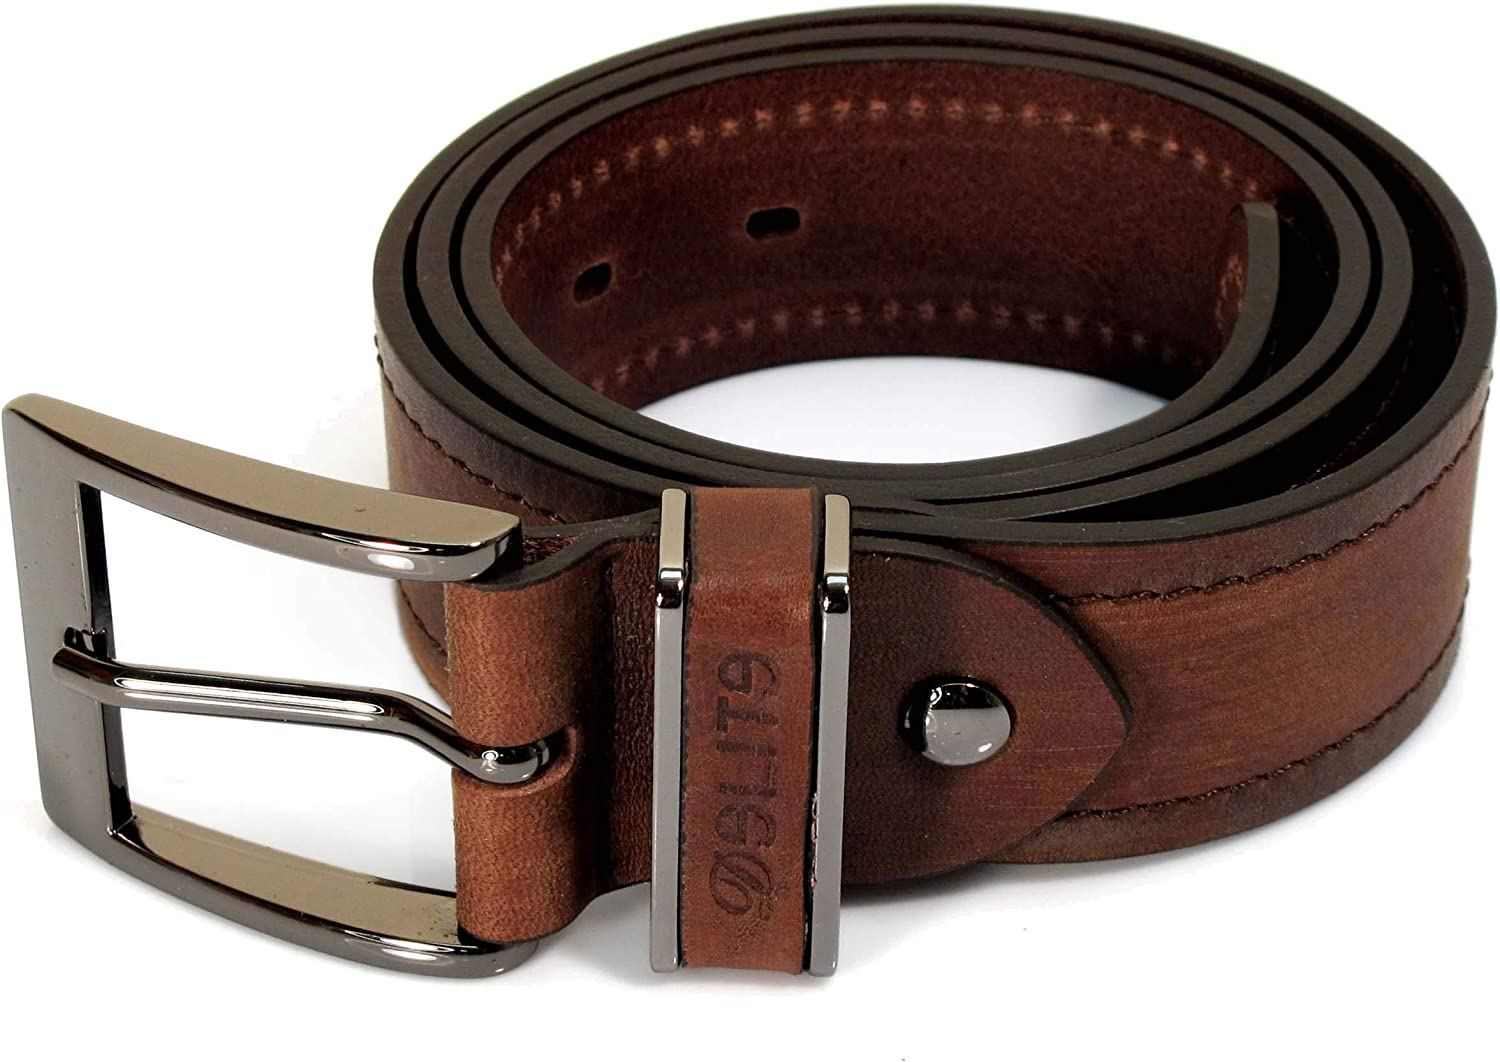 Mens Real Genuine Leather Belt Black Brown White 1.5 Wide S-XL Casual Jeans CU0